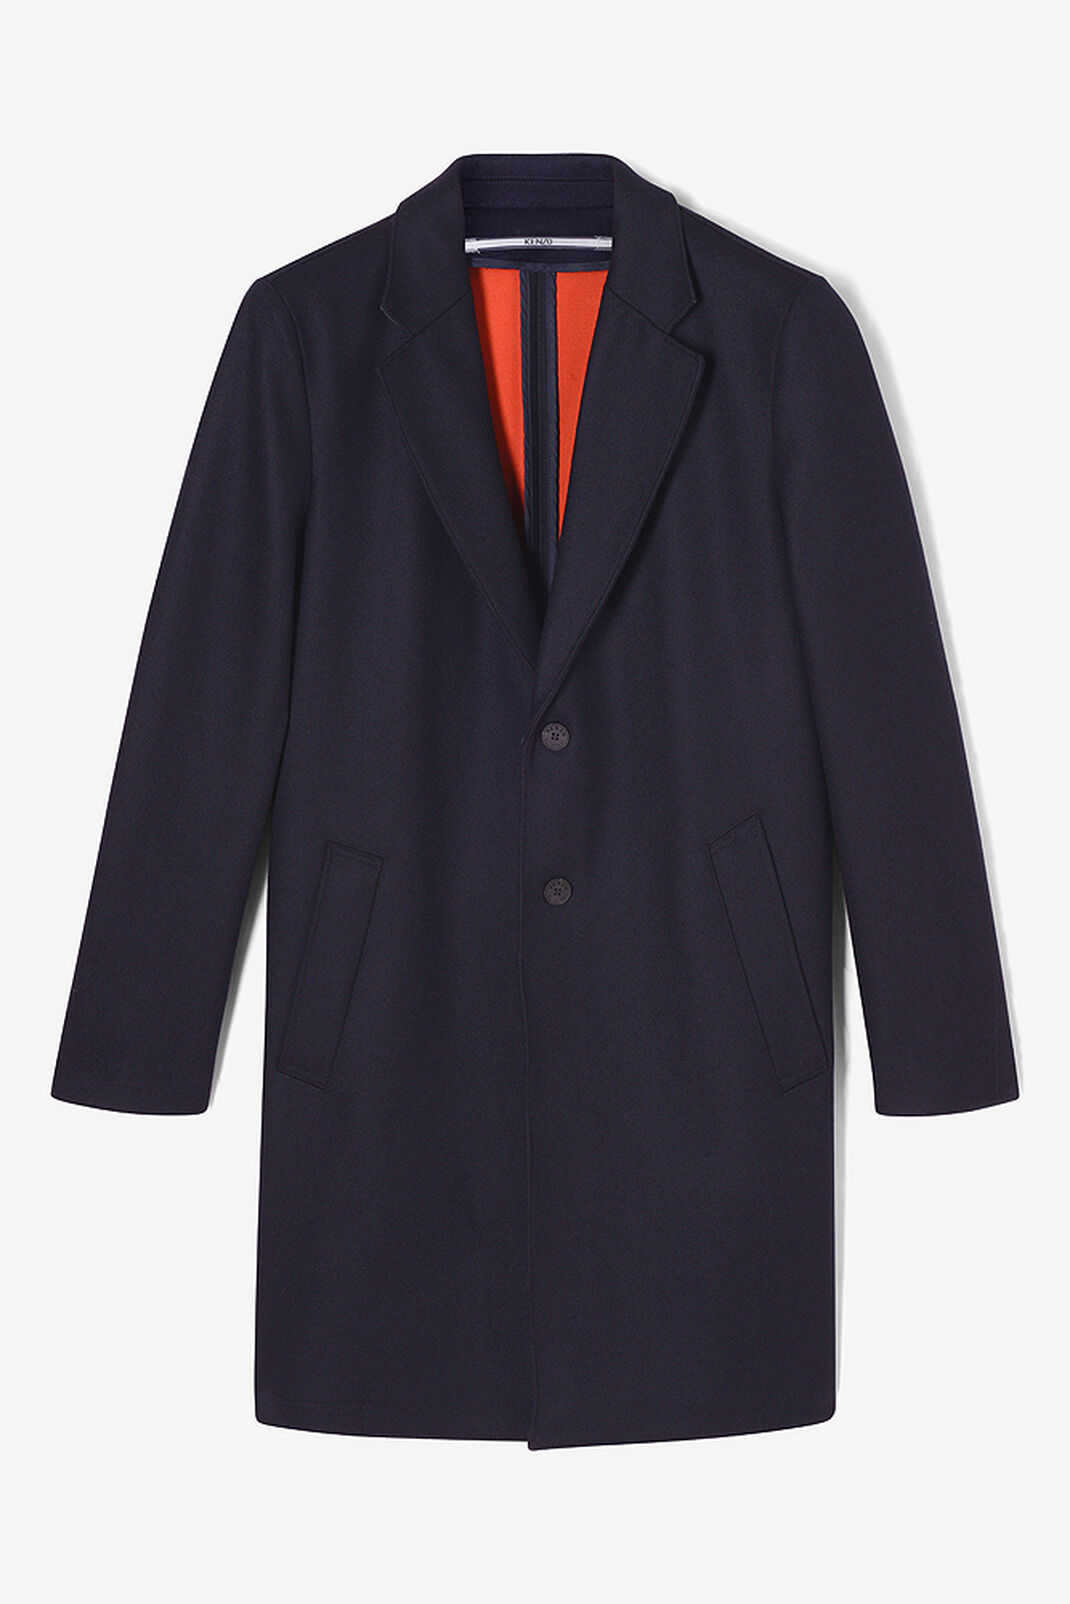 NAVY BLUE Scuba Wool Coat for women KENZO